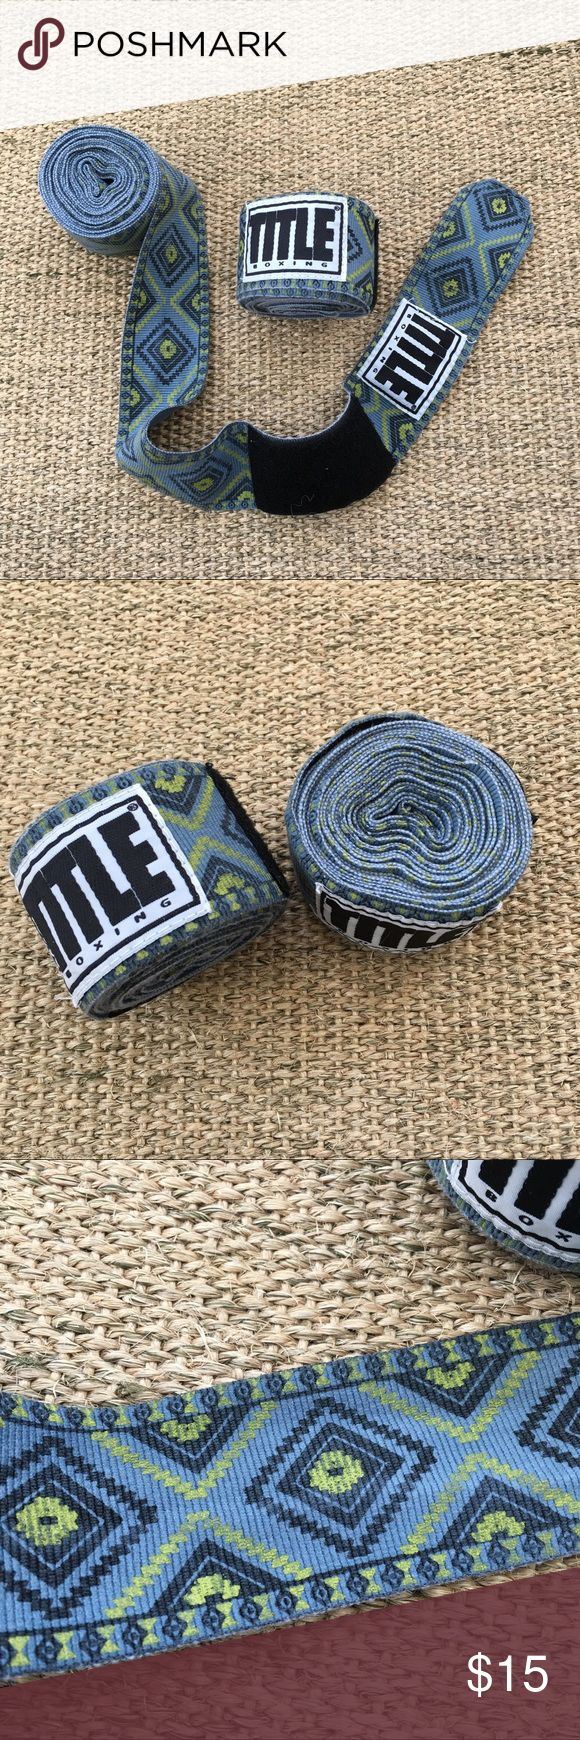 """TITLE Boxing Club Blue/Green Tribal Print Wraps Well used condition. Standard adult 180"""" long wraps. Material is a little thicker than most wraps. 🐾 Pet-friendly, smoke-free home. 🚫 No trades. No holds. 📦 Fast shipping! 🙋🏻 Considering all reasonable offers! TITLE Boxing Club Accessories"""